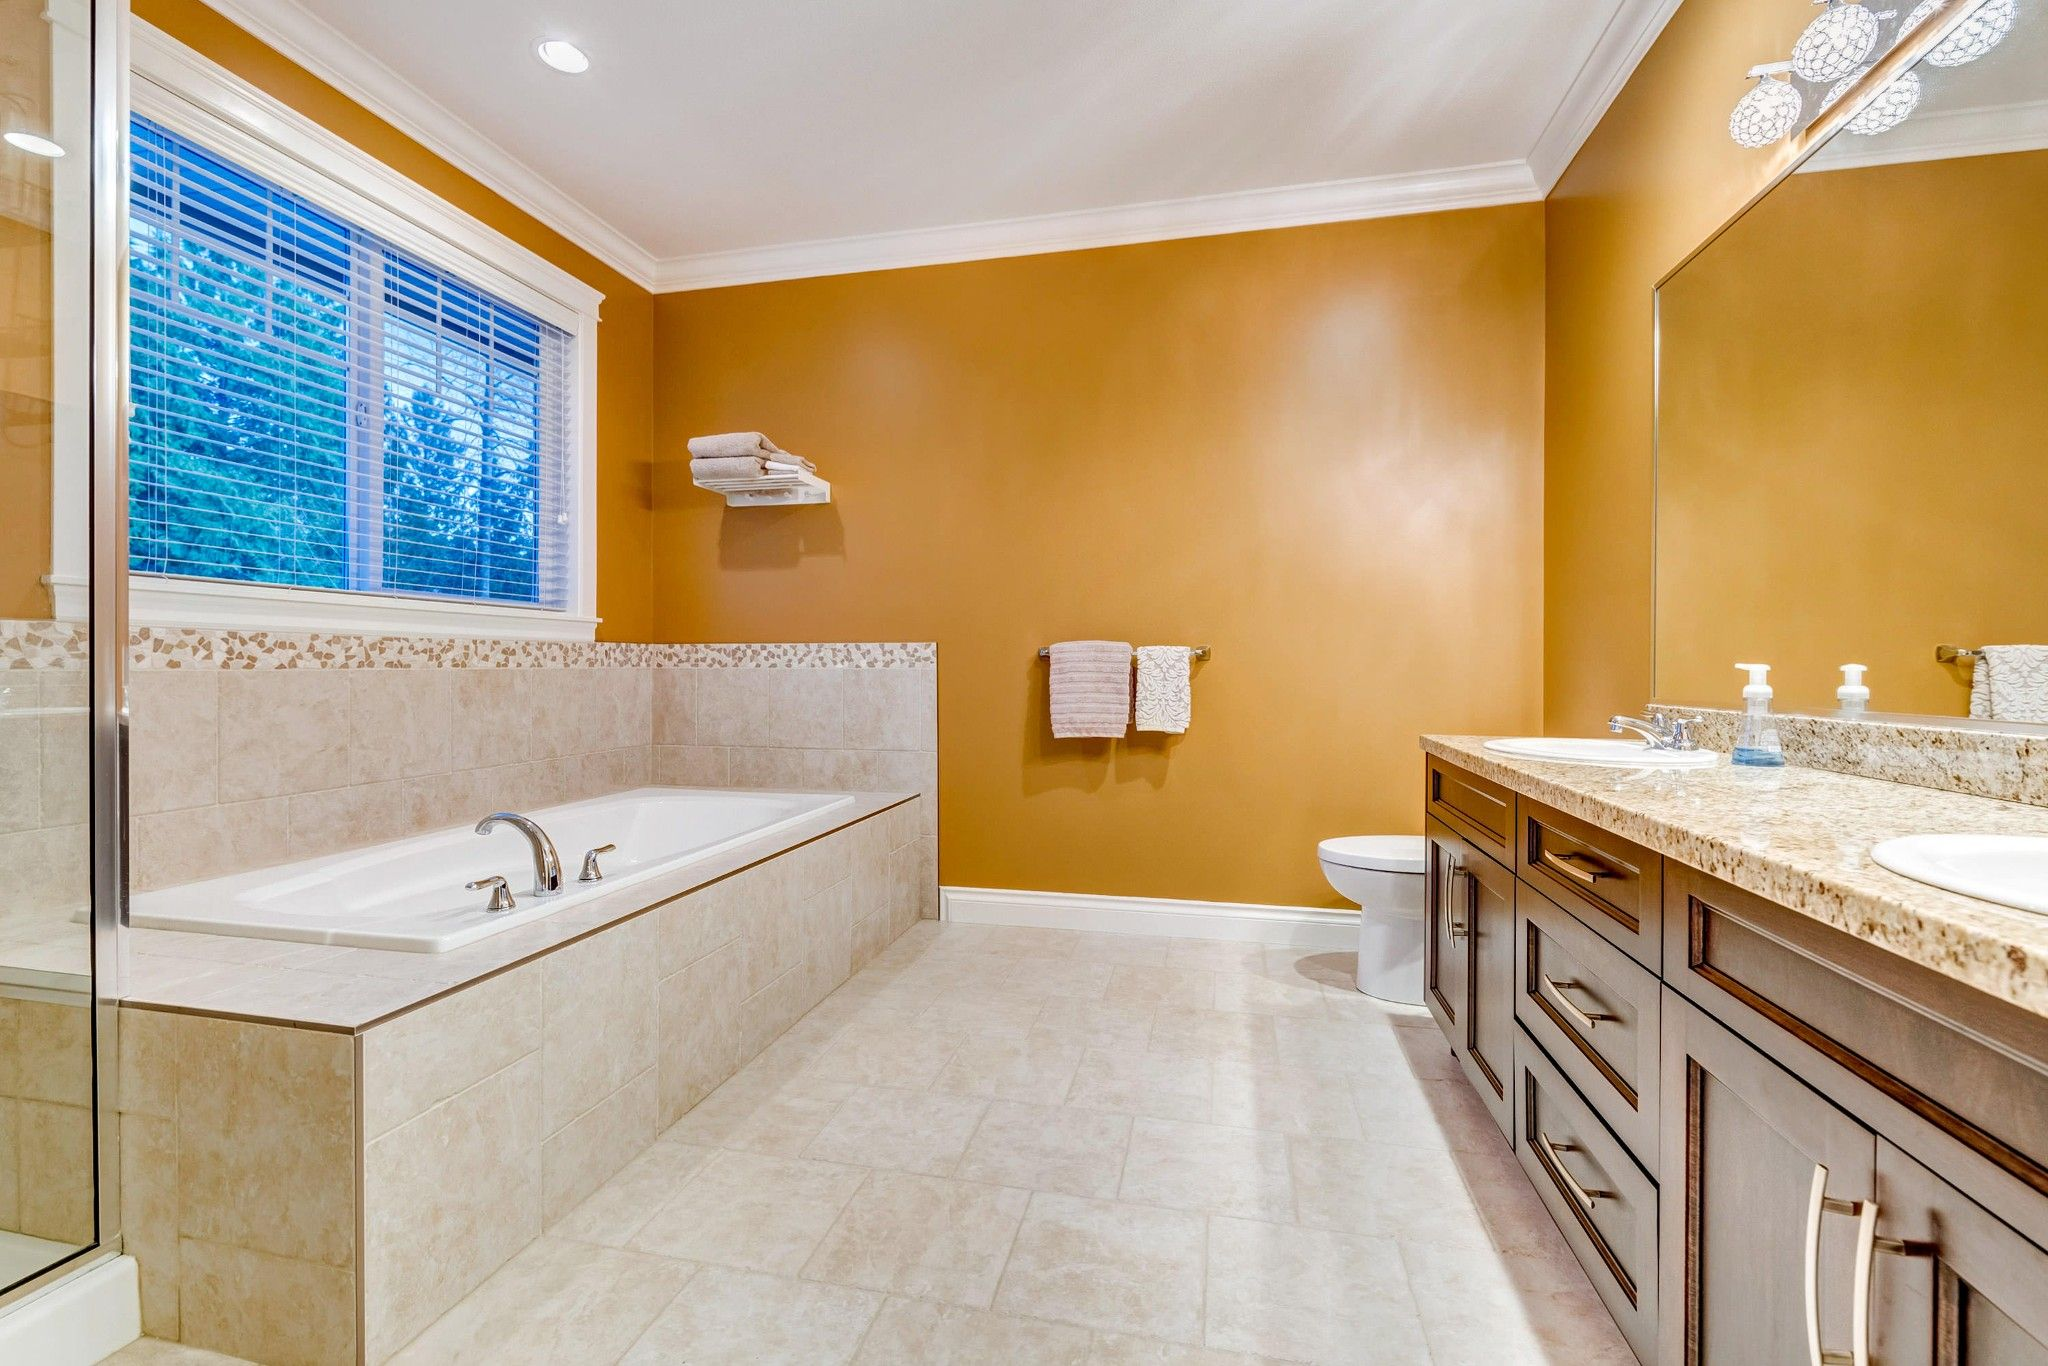 Photo 12: Photos: 16 13210 SHOESMITH CRESCENT in Maple Ridge: Silver Valley House for sale : MLS®# R2448043